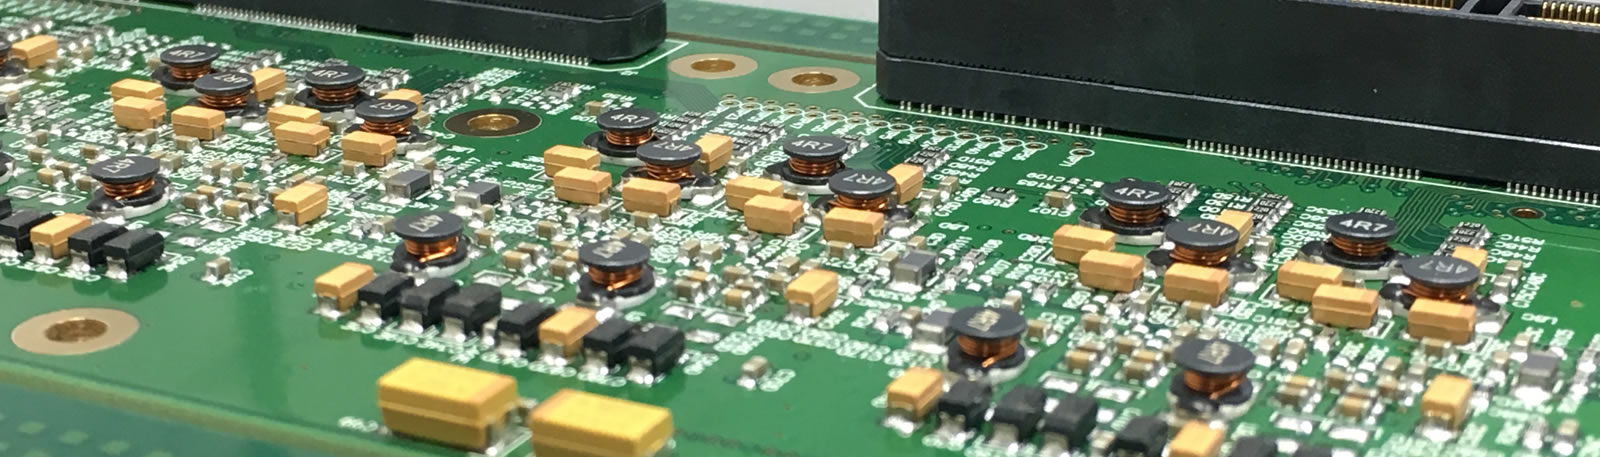 Circuit board production line